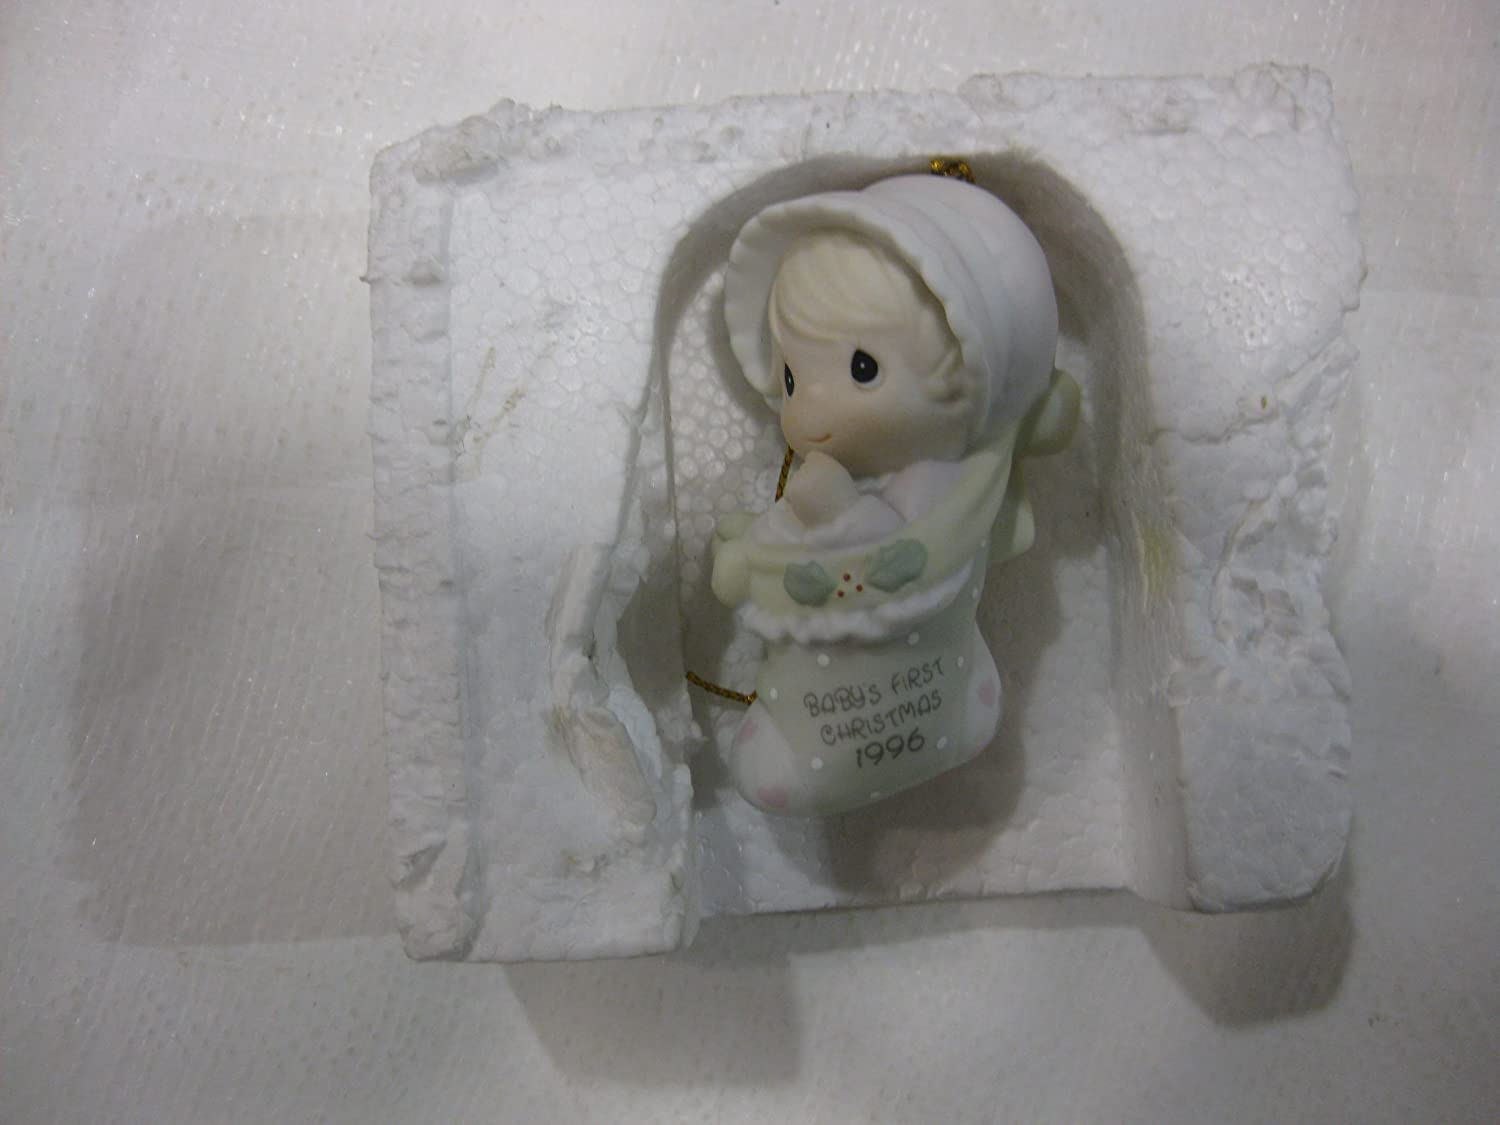 1996 Baby's First Christmas Annual Edition Stocking Ornament by Enesco   B006G2JVDI